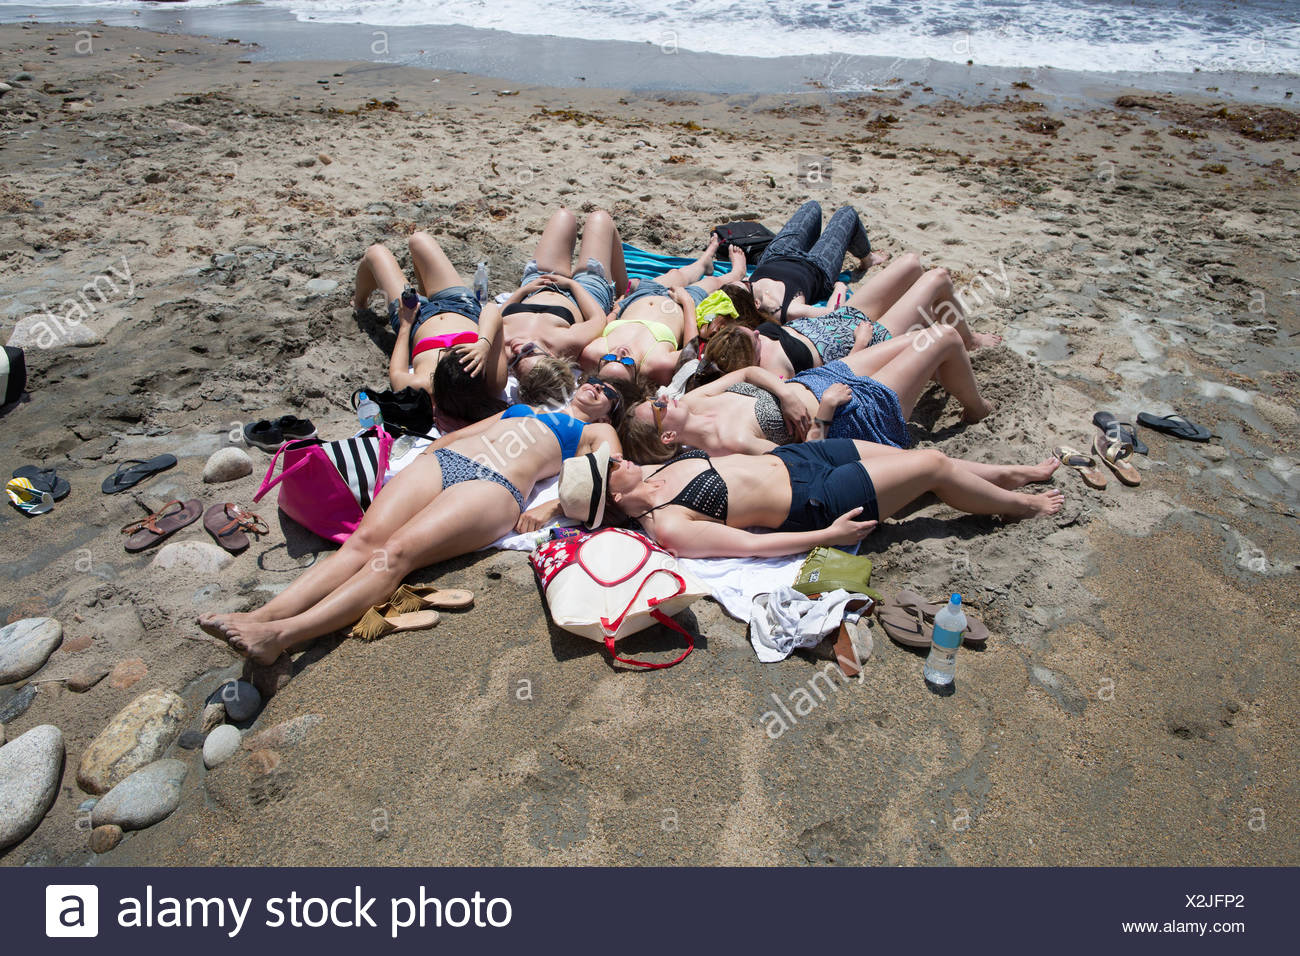 Group of young women sunbathing on beach, Block Island, Rhode Island, USA - Stock Image